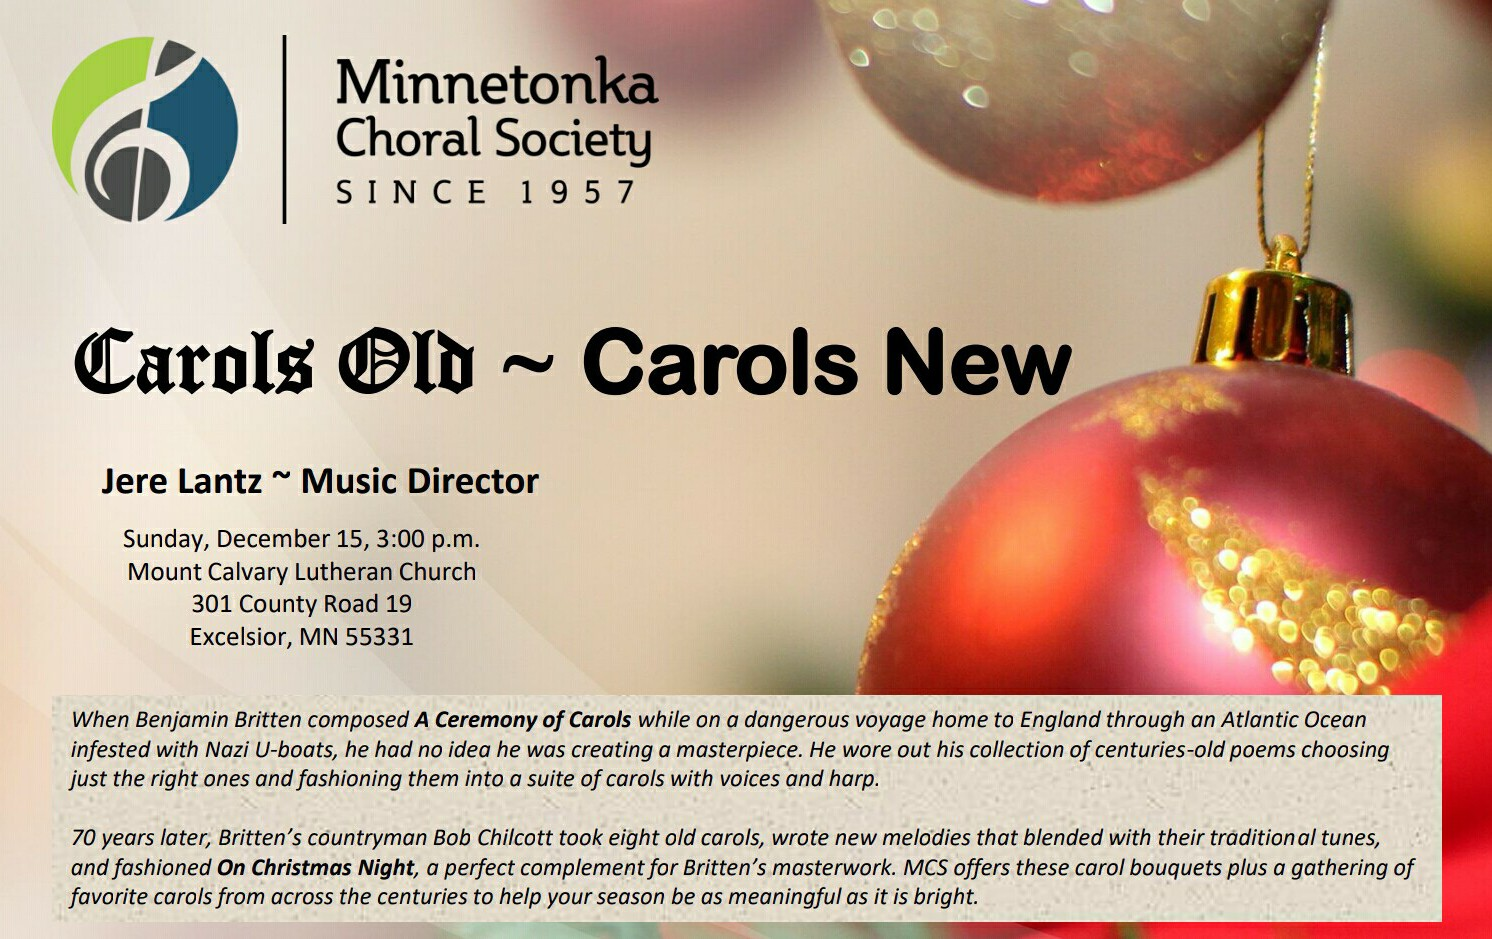 Holiday Concert Presented By Minnetonka Choral Society With Jere